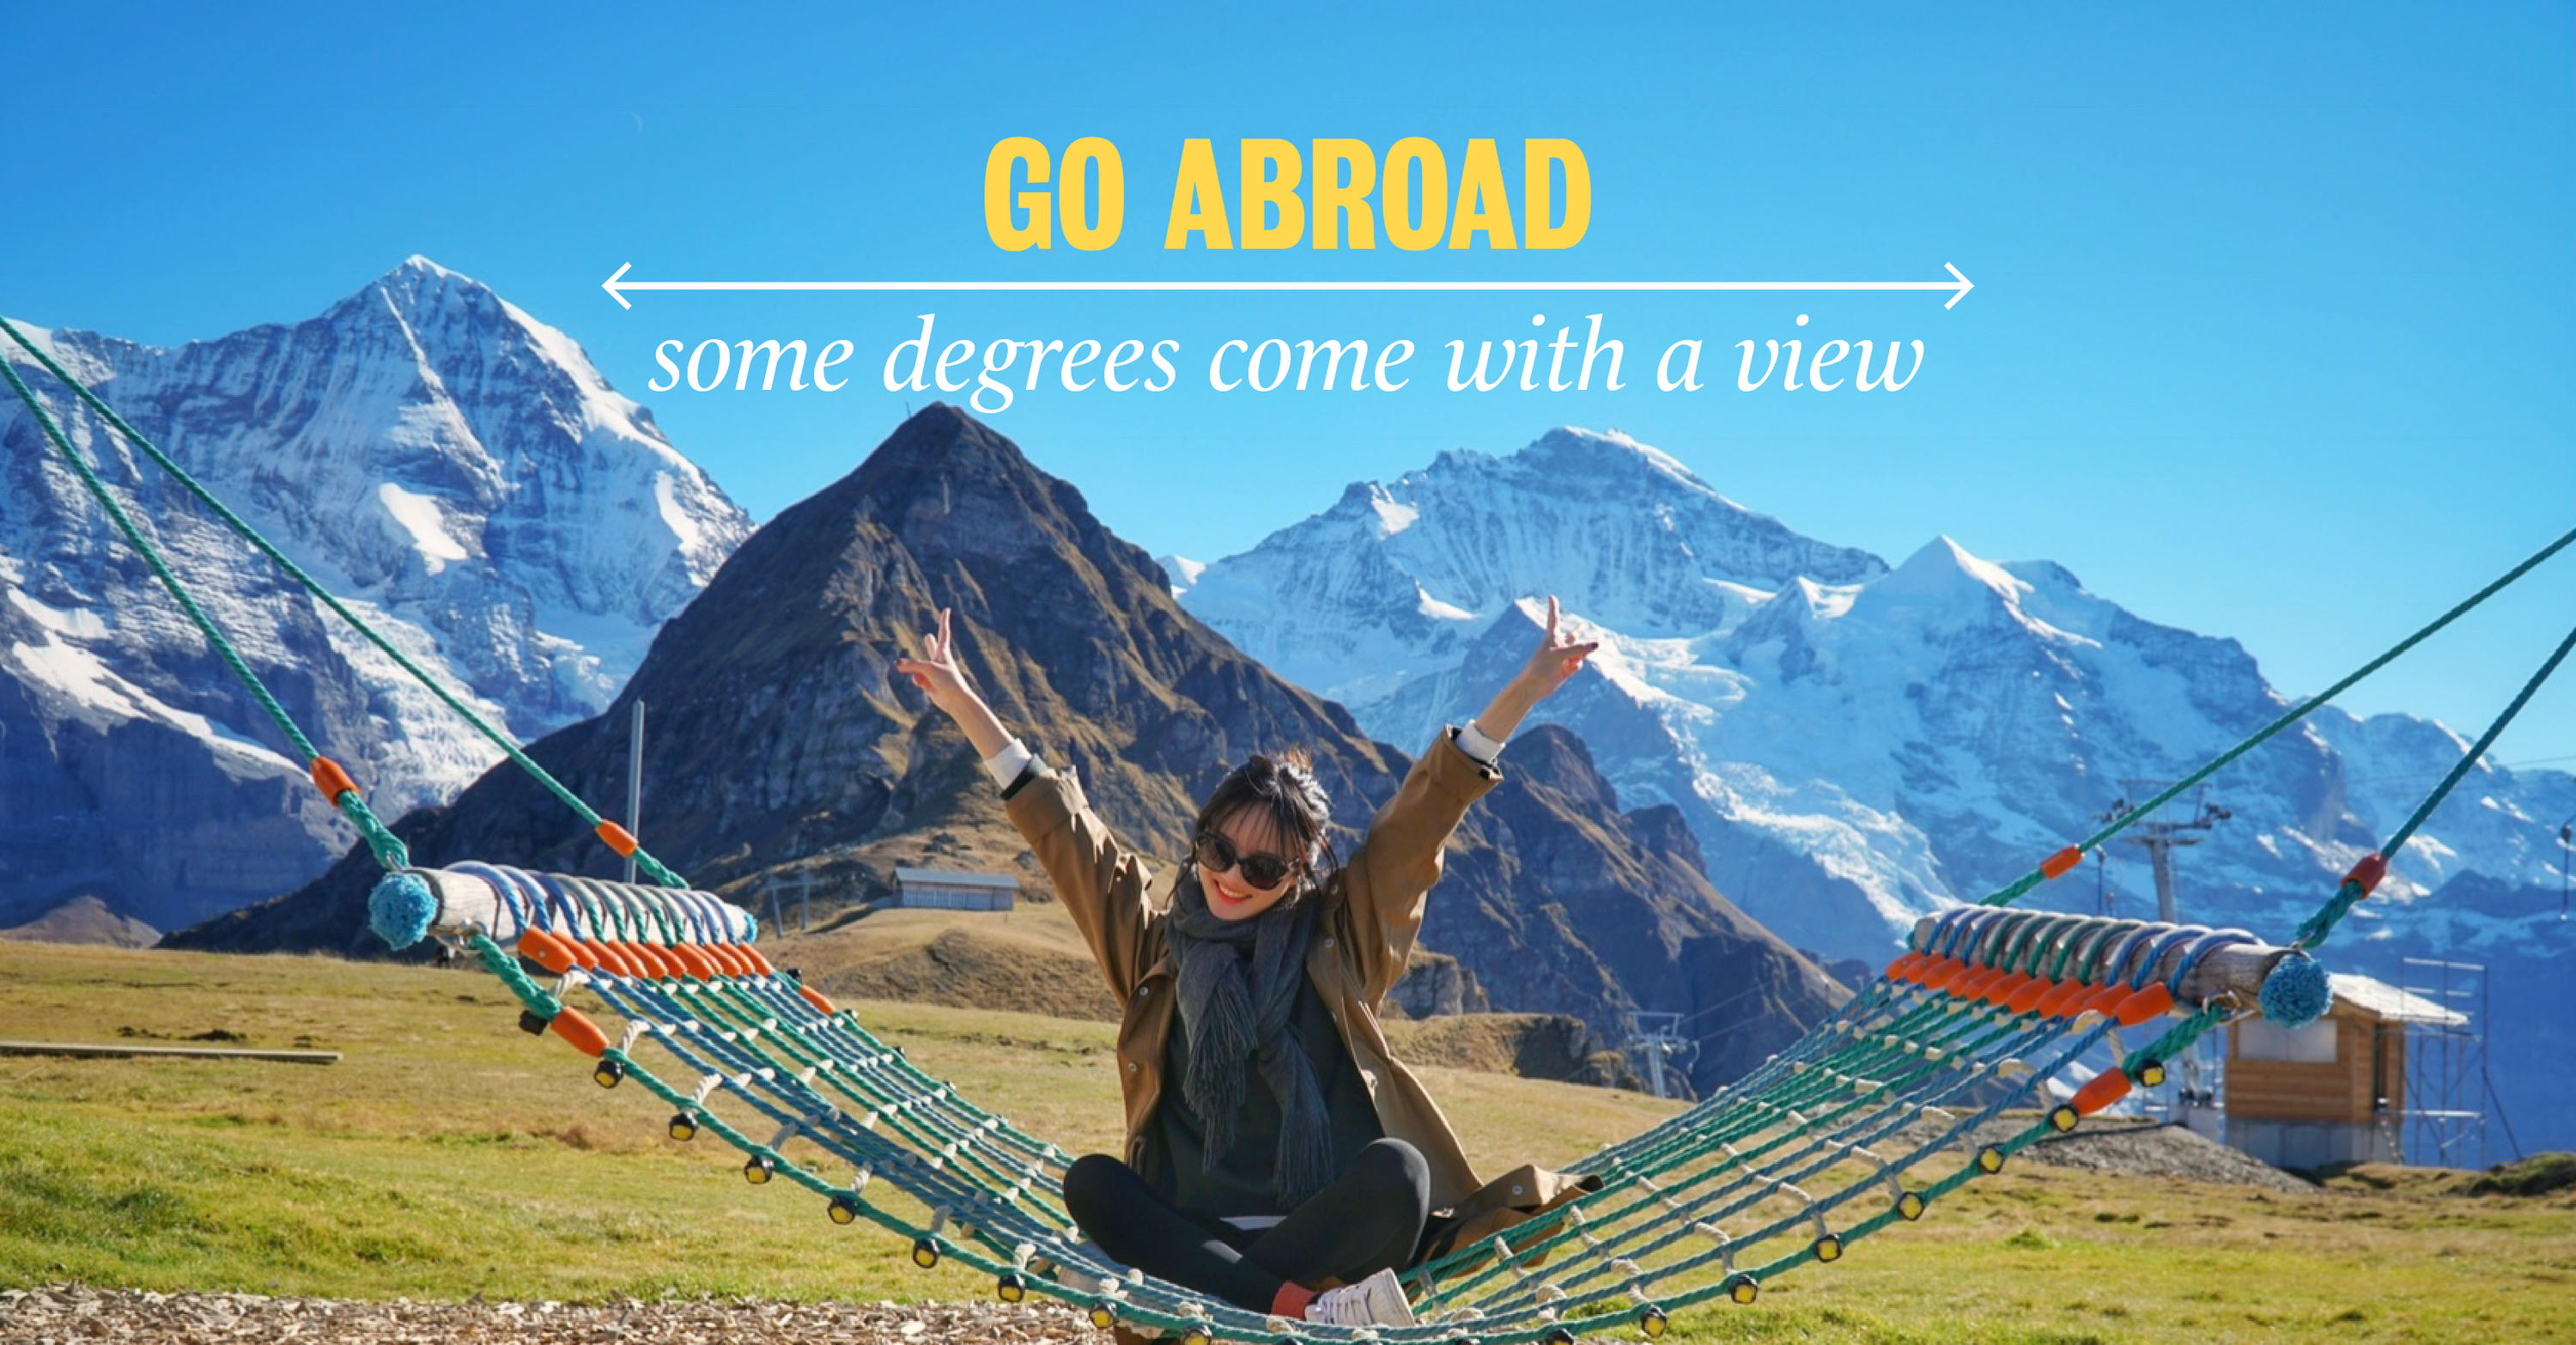 Go abroad: some degrees come with a view.